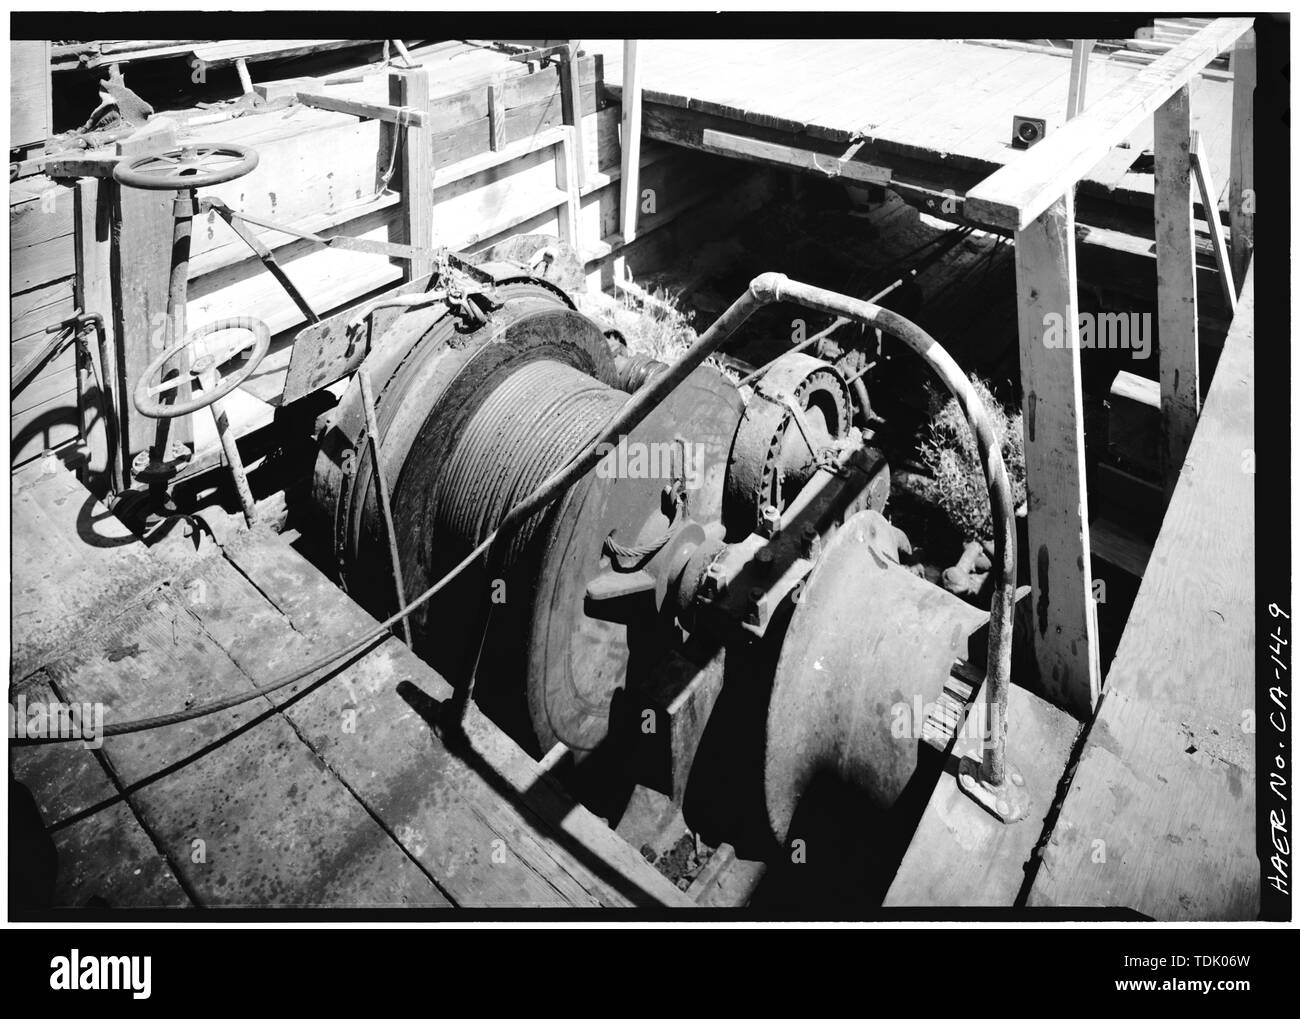 OBLIQUE VIEW OF 'OTHER WAYS' WINCH - Anderson-Christofani Shipyard, Innes Avenue and Griffith Street, San Francisco, San Francisco County, CA - Stock Image